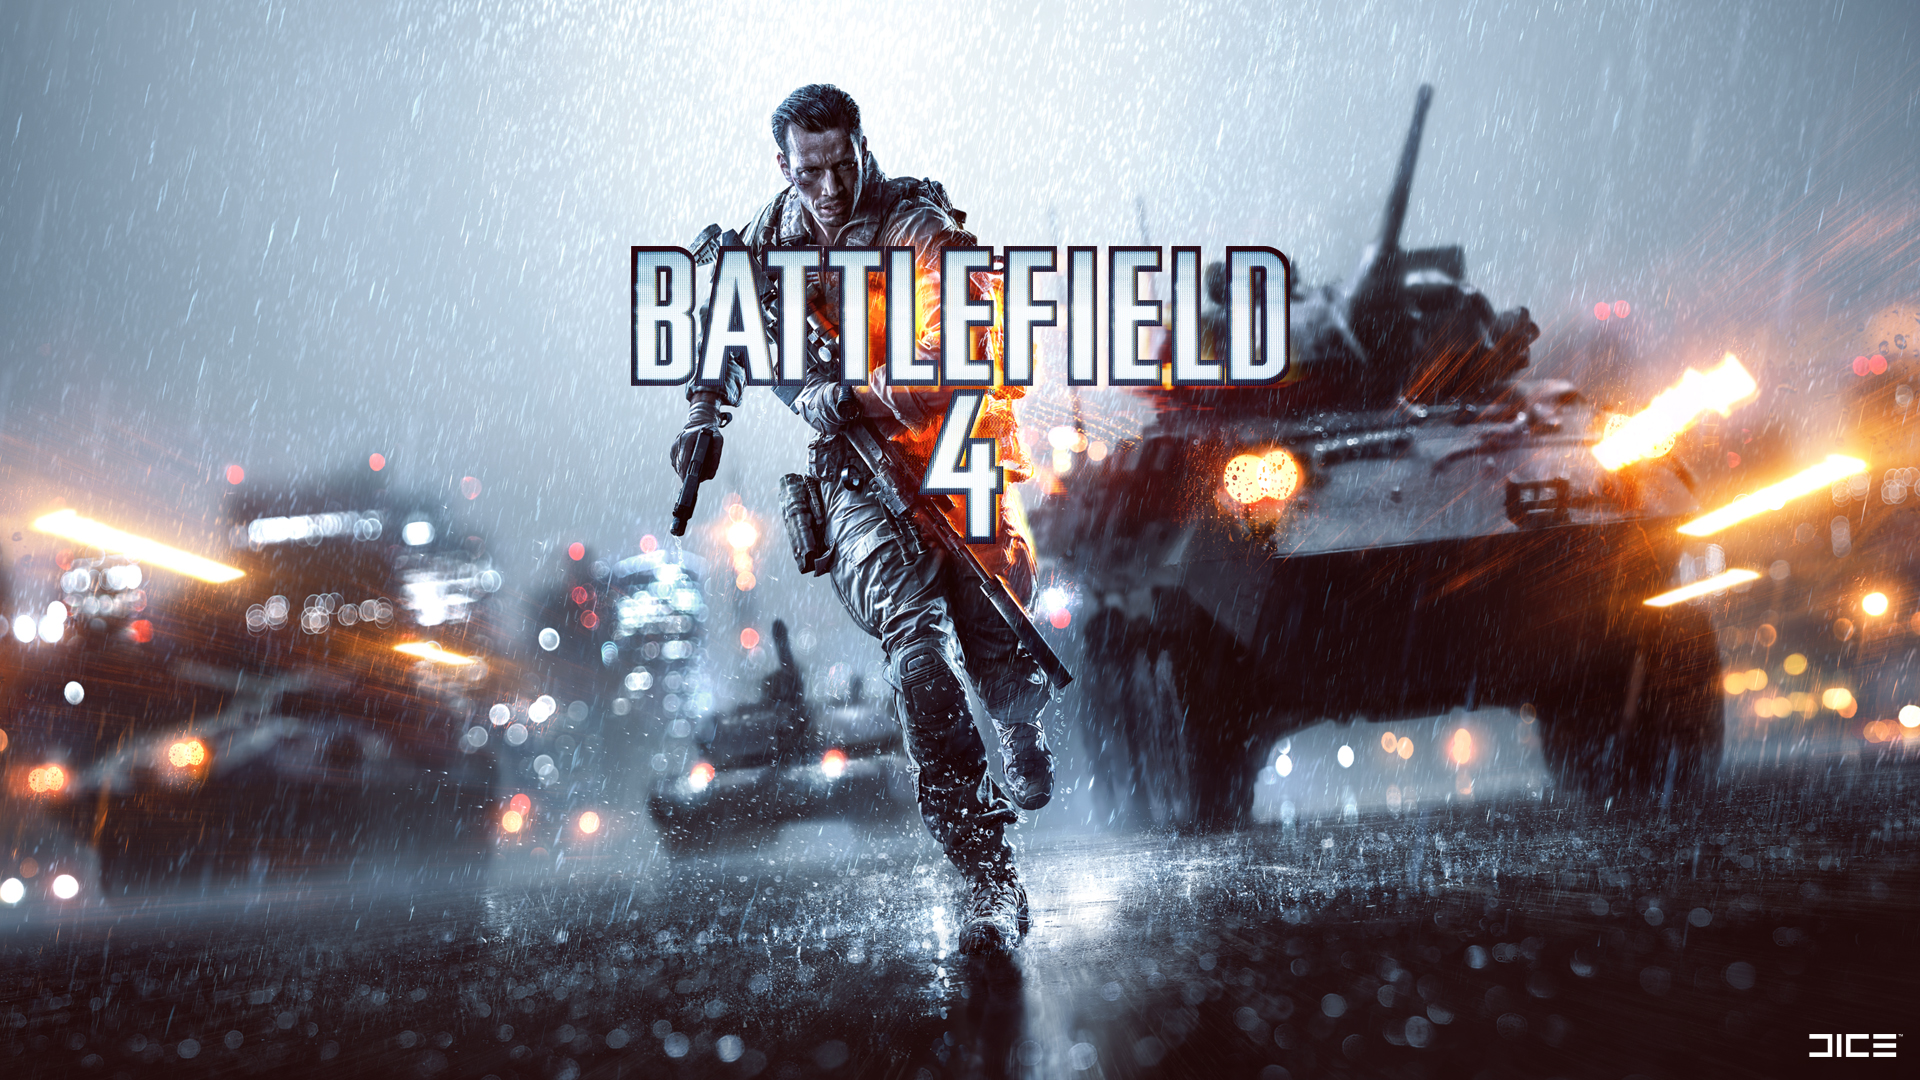 Battlefield 4 Official Full Hd Wallpaper By Muusedesign On